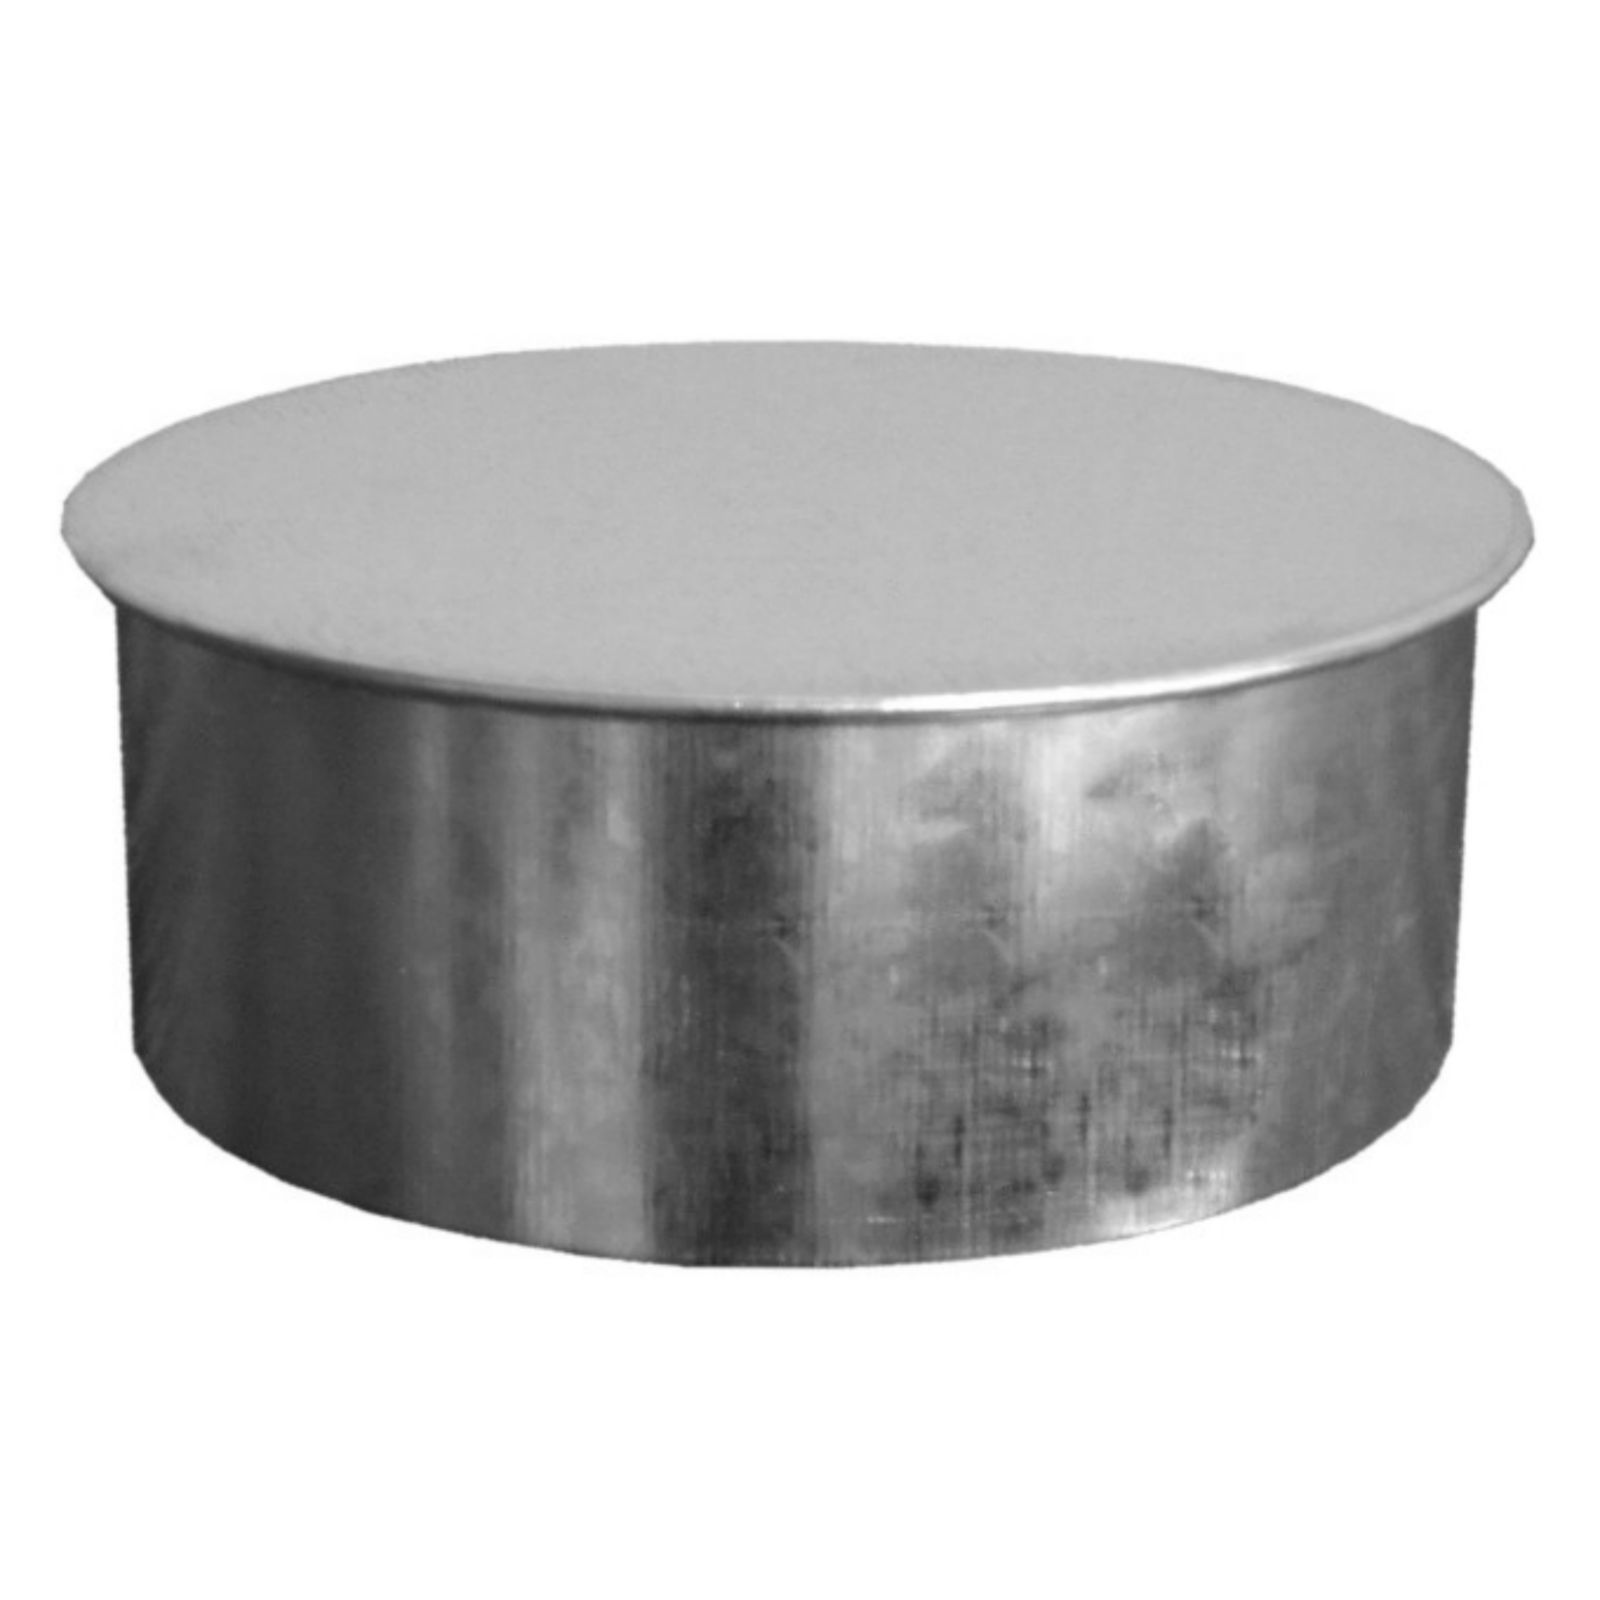 "Snappy 64-06 - # Tee Cap 6"" No Crimp"